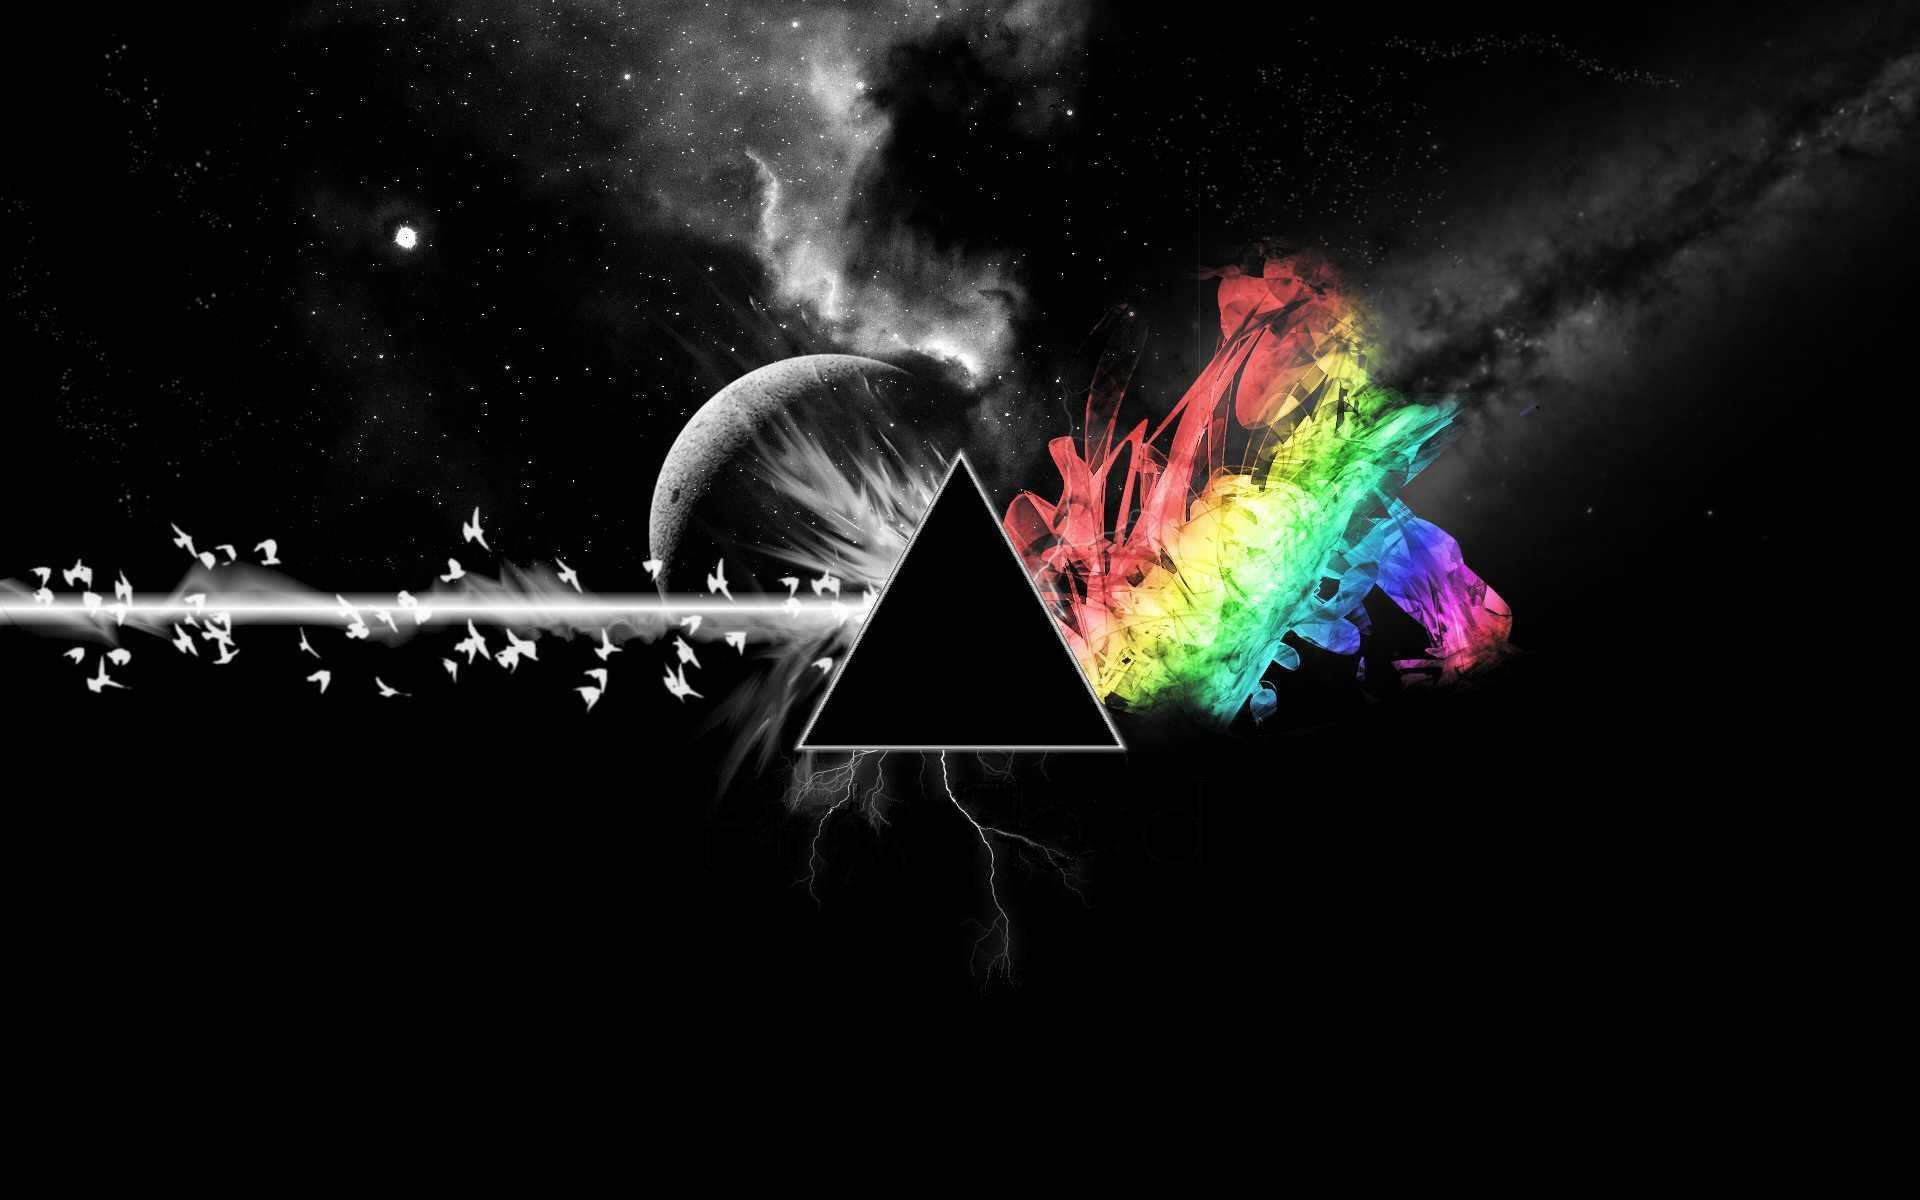 Pink Floyd - The Dark Side of the Moon Wallpaper #9099